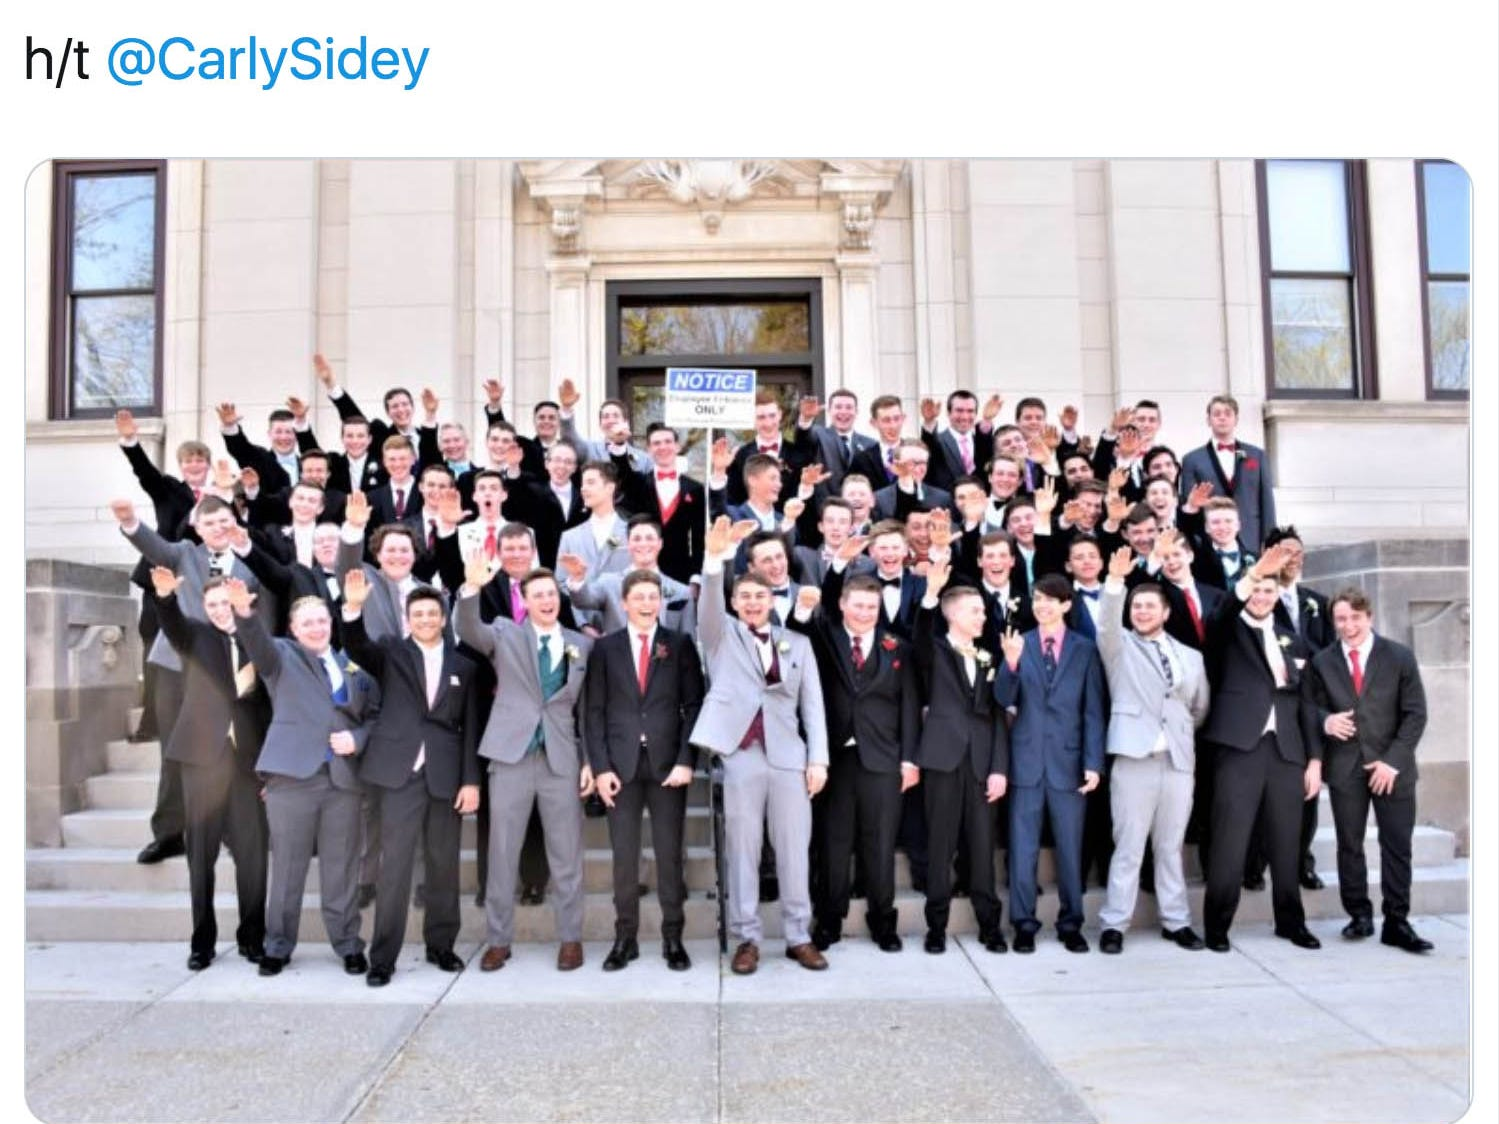 'This isn't who we are': Viral Nazi salute photo of Wisconsin high school promgoers draws widespread condemnation